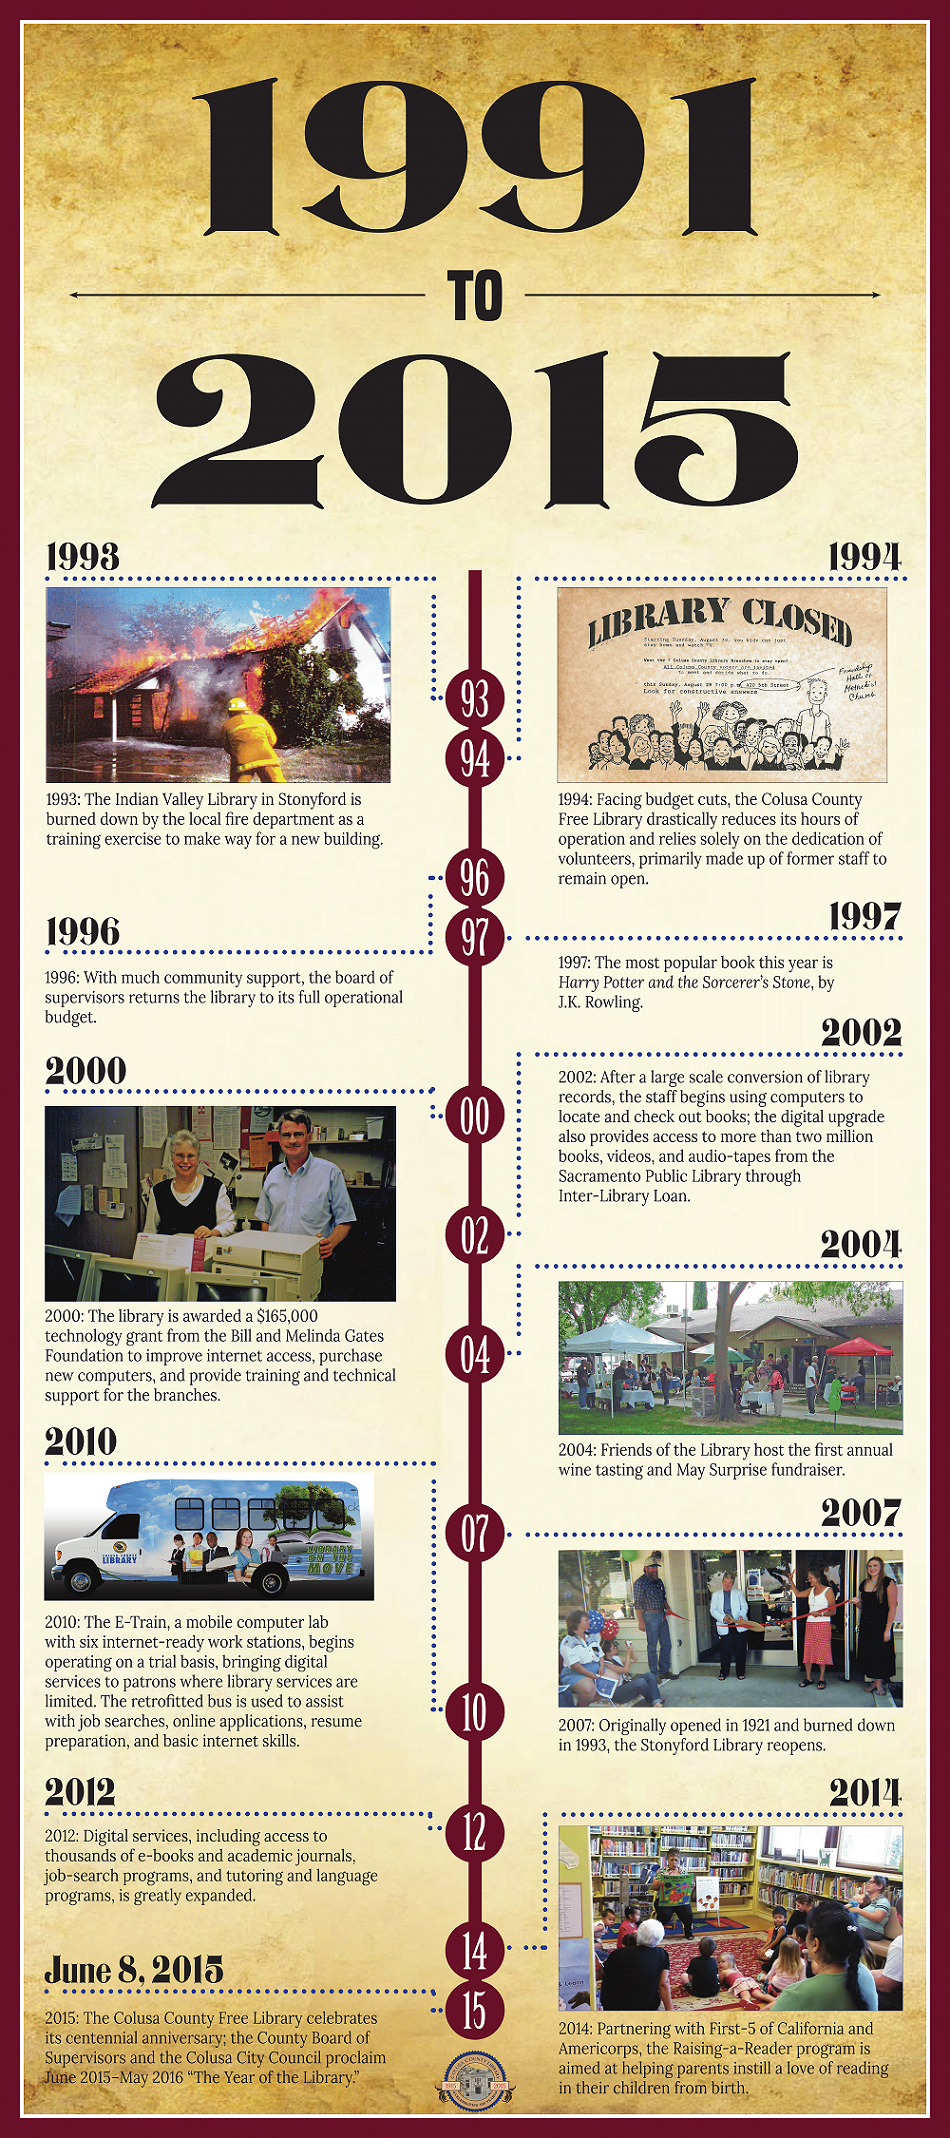 Library History 1991-2015 Opens in new window